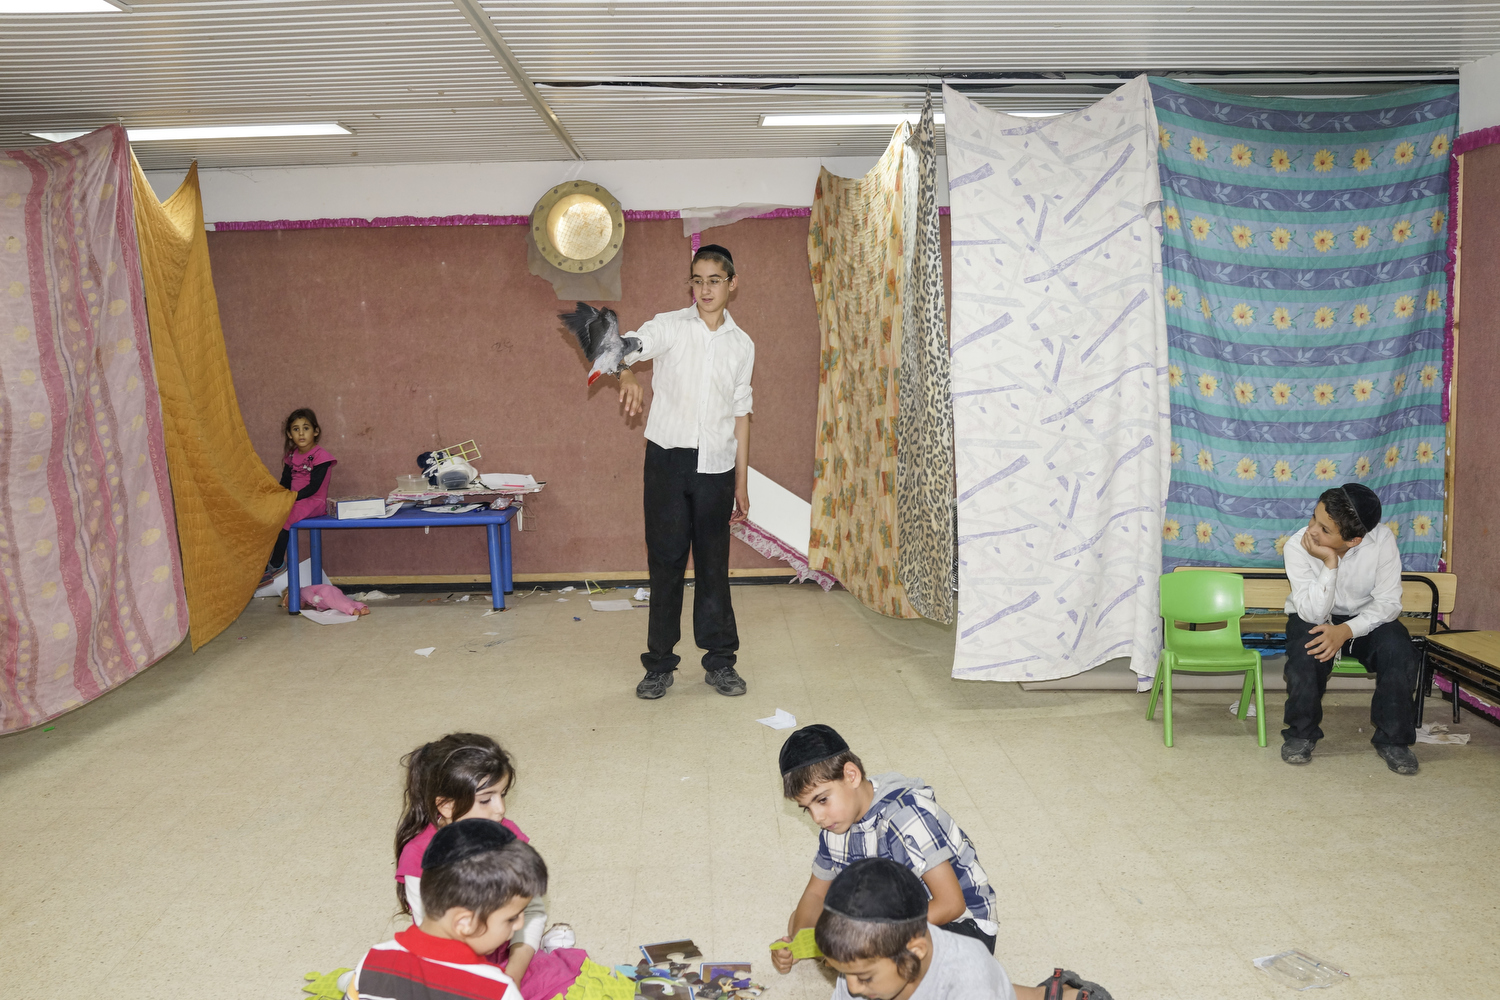 2014.  Netivot.  Israel.  Children in a bomb shelter during Operation Protective Edge.  Since 1991, houses have been mandated to be built with bomb shelters, but in the older neighborhoods communal bomb shelters are still in use.  During the war against Gaza, the elderly and the young often spent their days in the shelters while their parents went to their jobs.